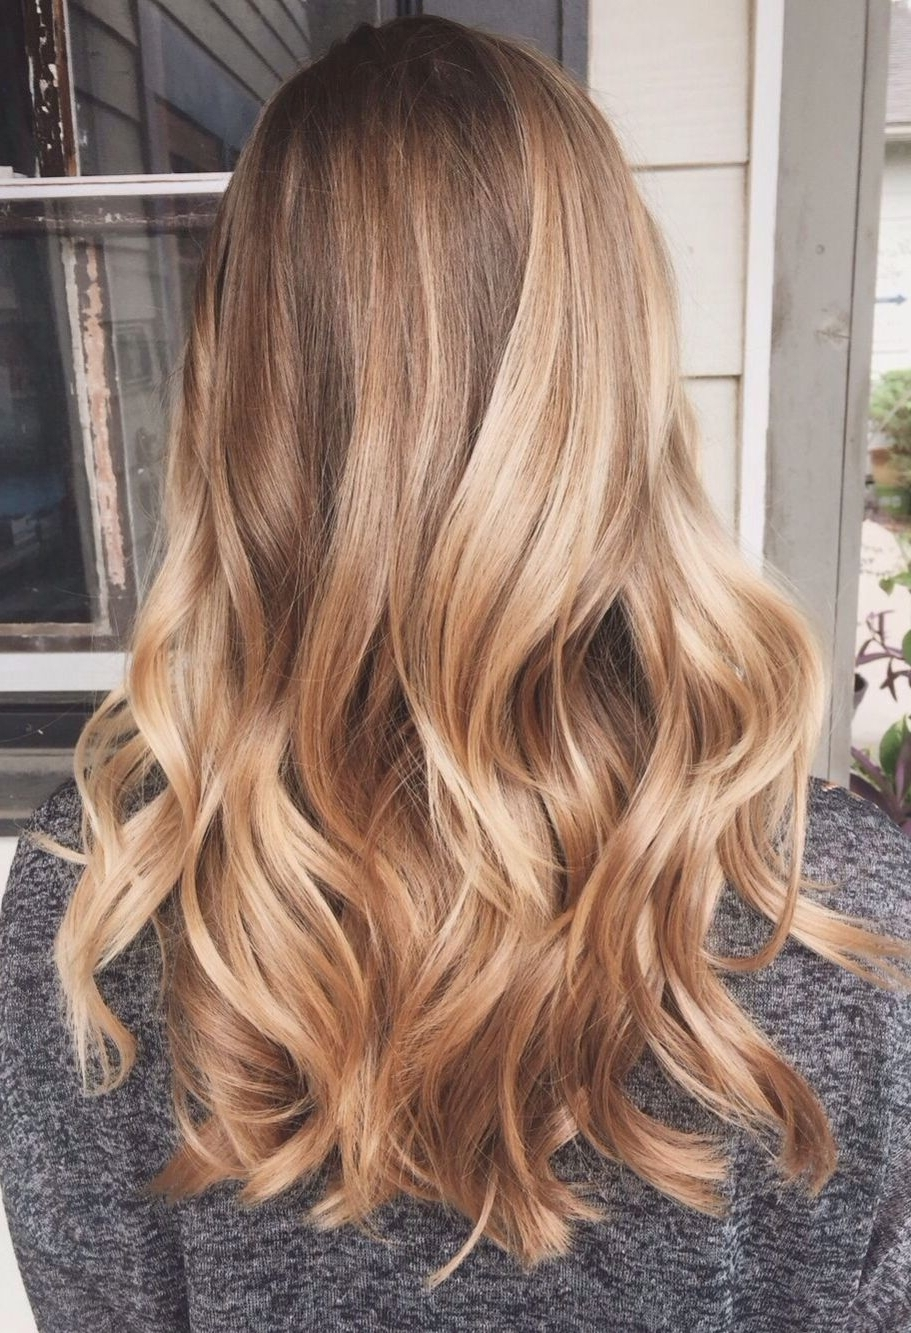 Wavy Hair, Short Intended For 2018 Casual Bright Waves Blonde Hairstyles With Bangs (View 16 of 20)